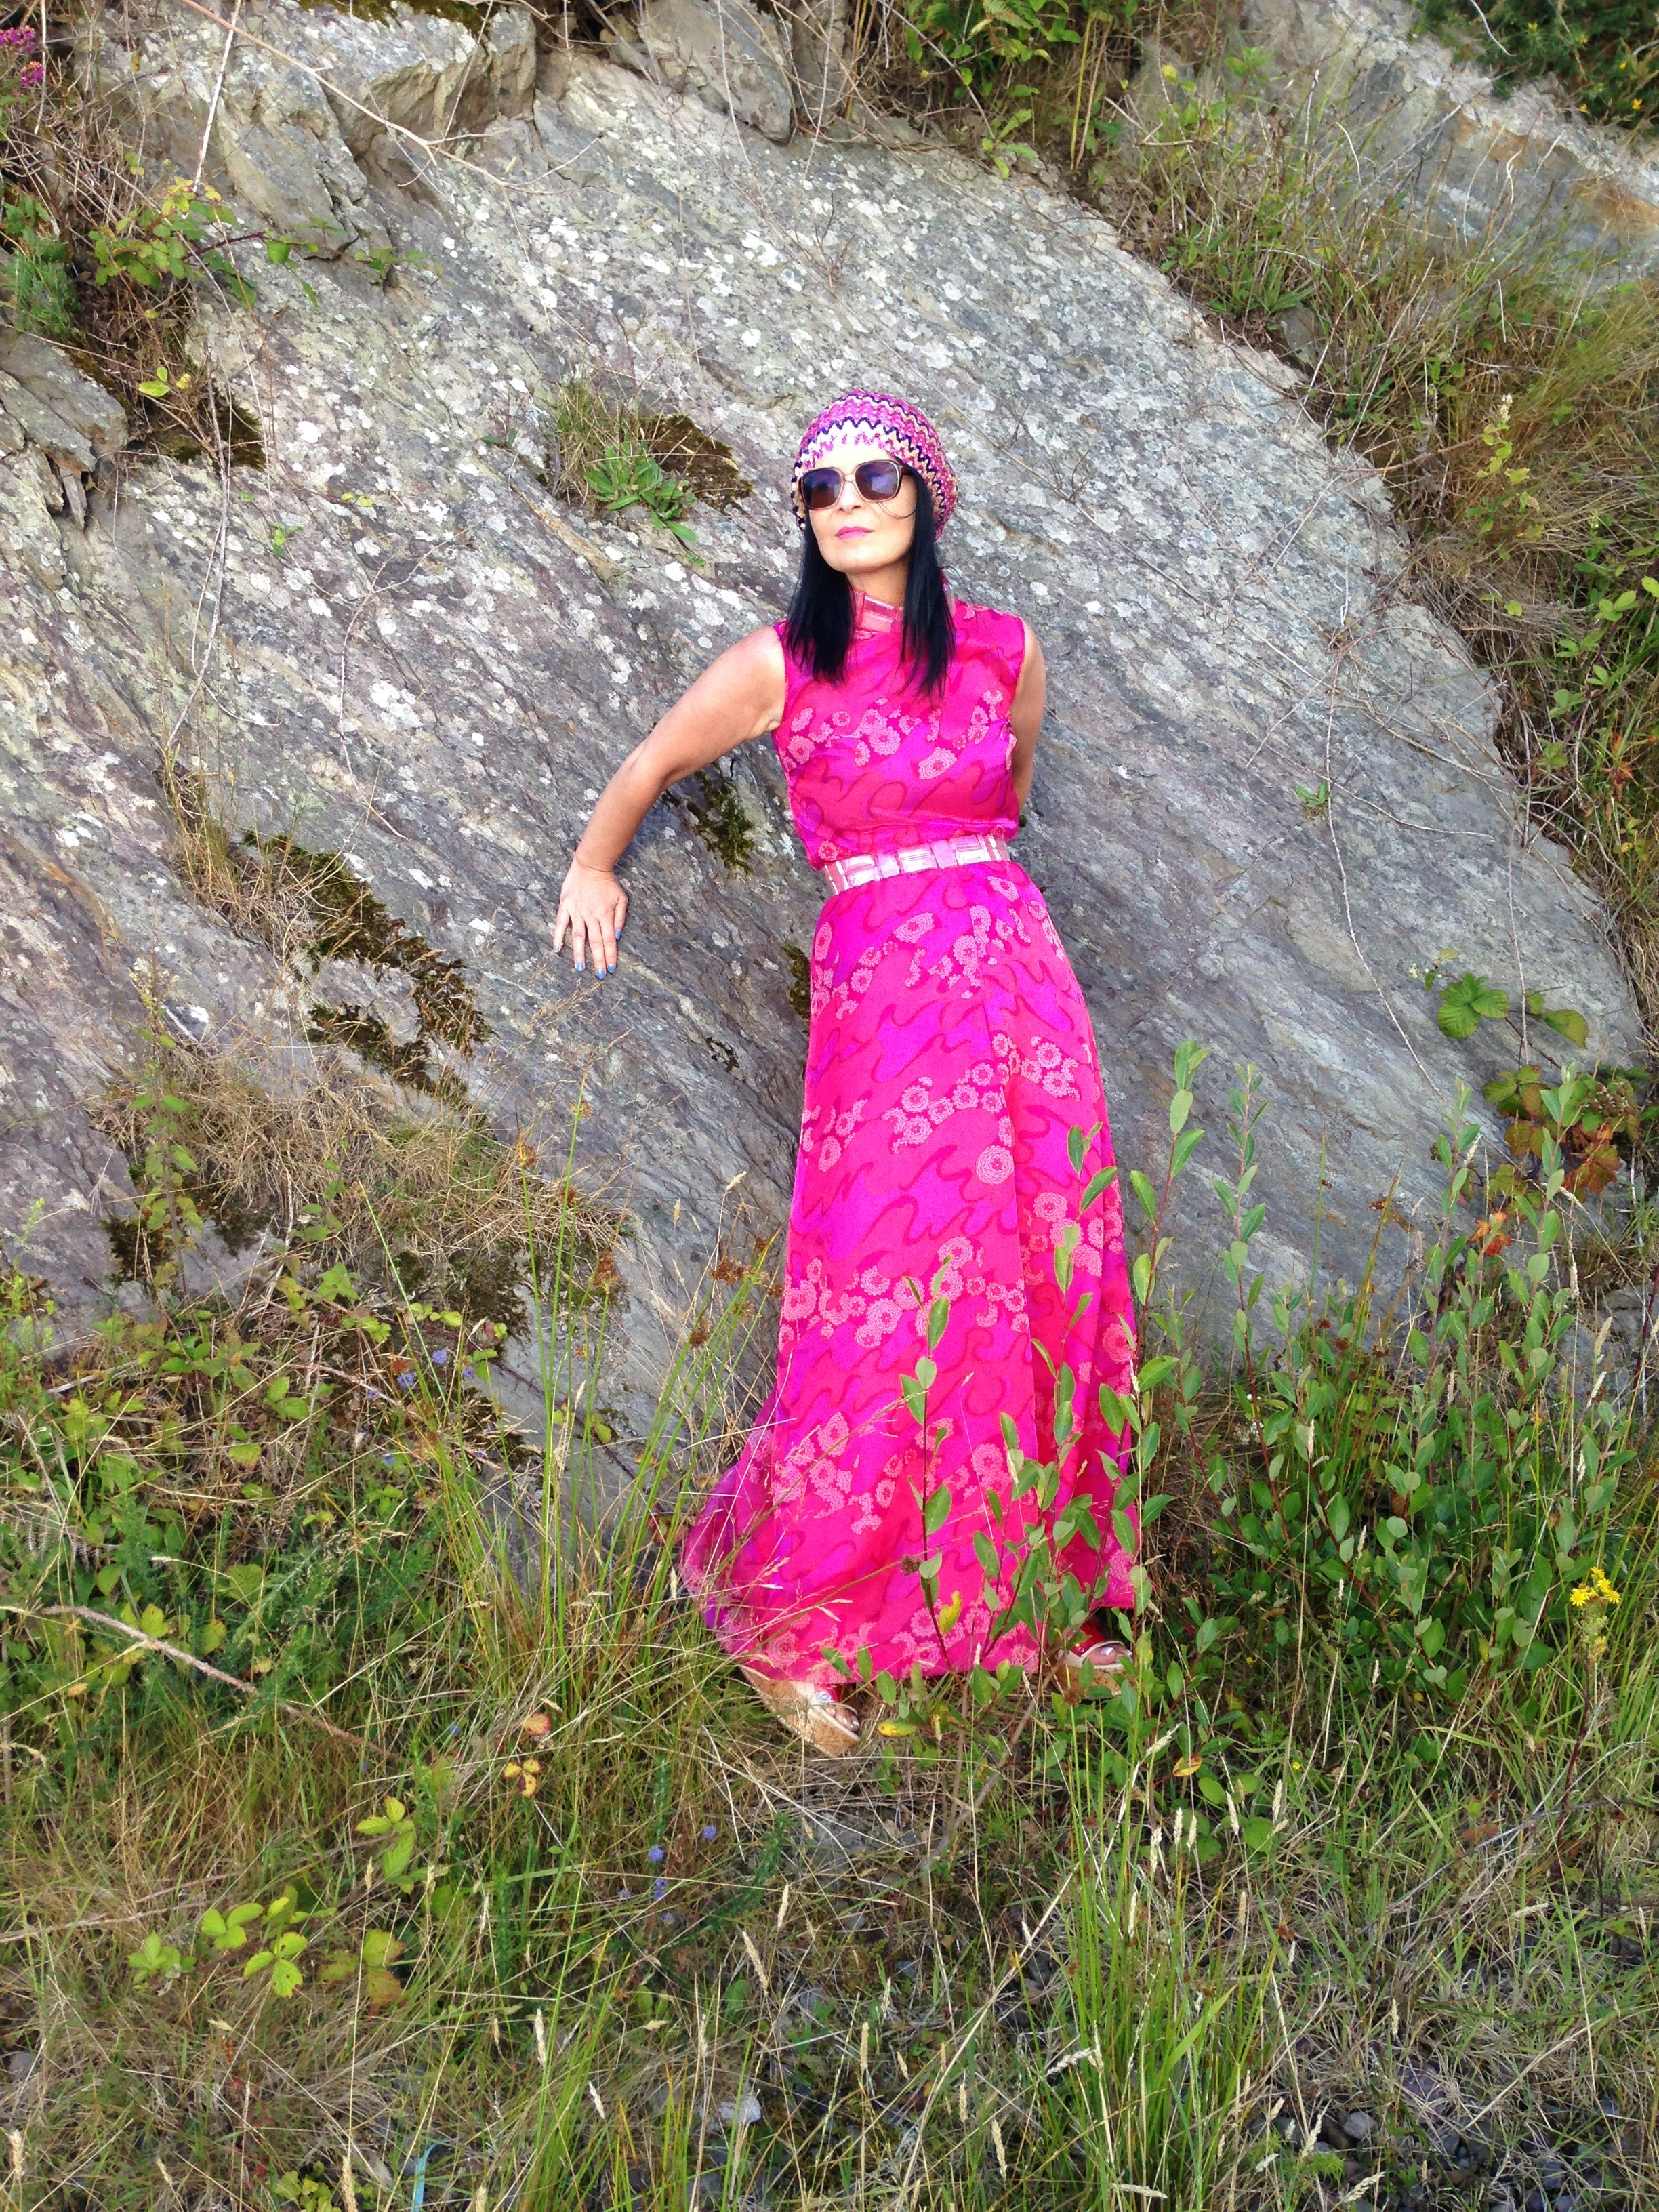 This photo taken in Augest 2015, proved popular because of the contrast between the rugged rock formations and the frivolous frothiness of the pink 60s catsuit.